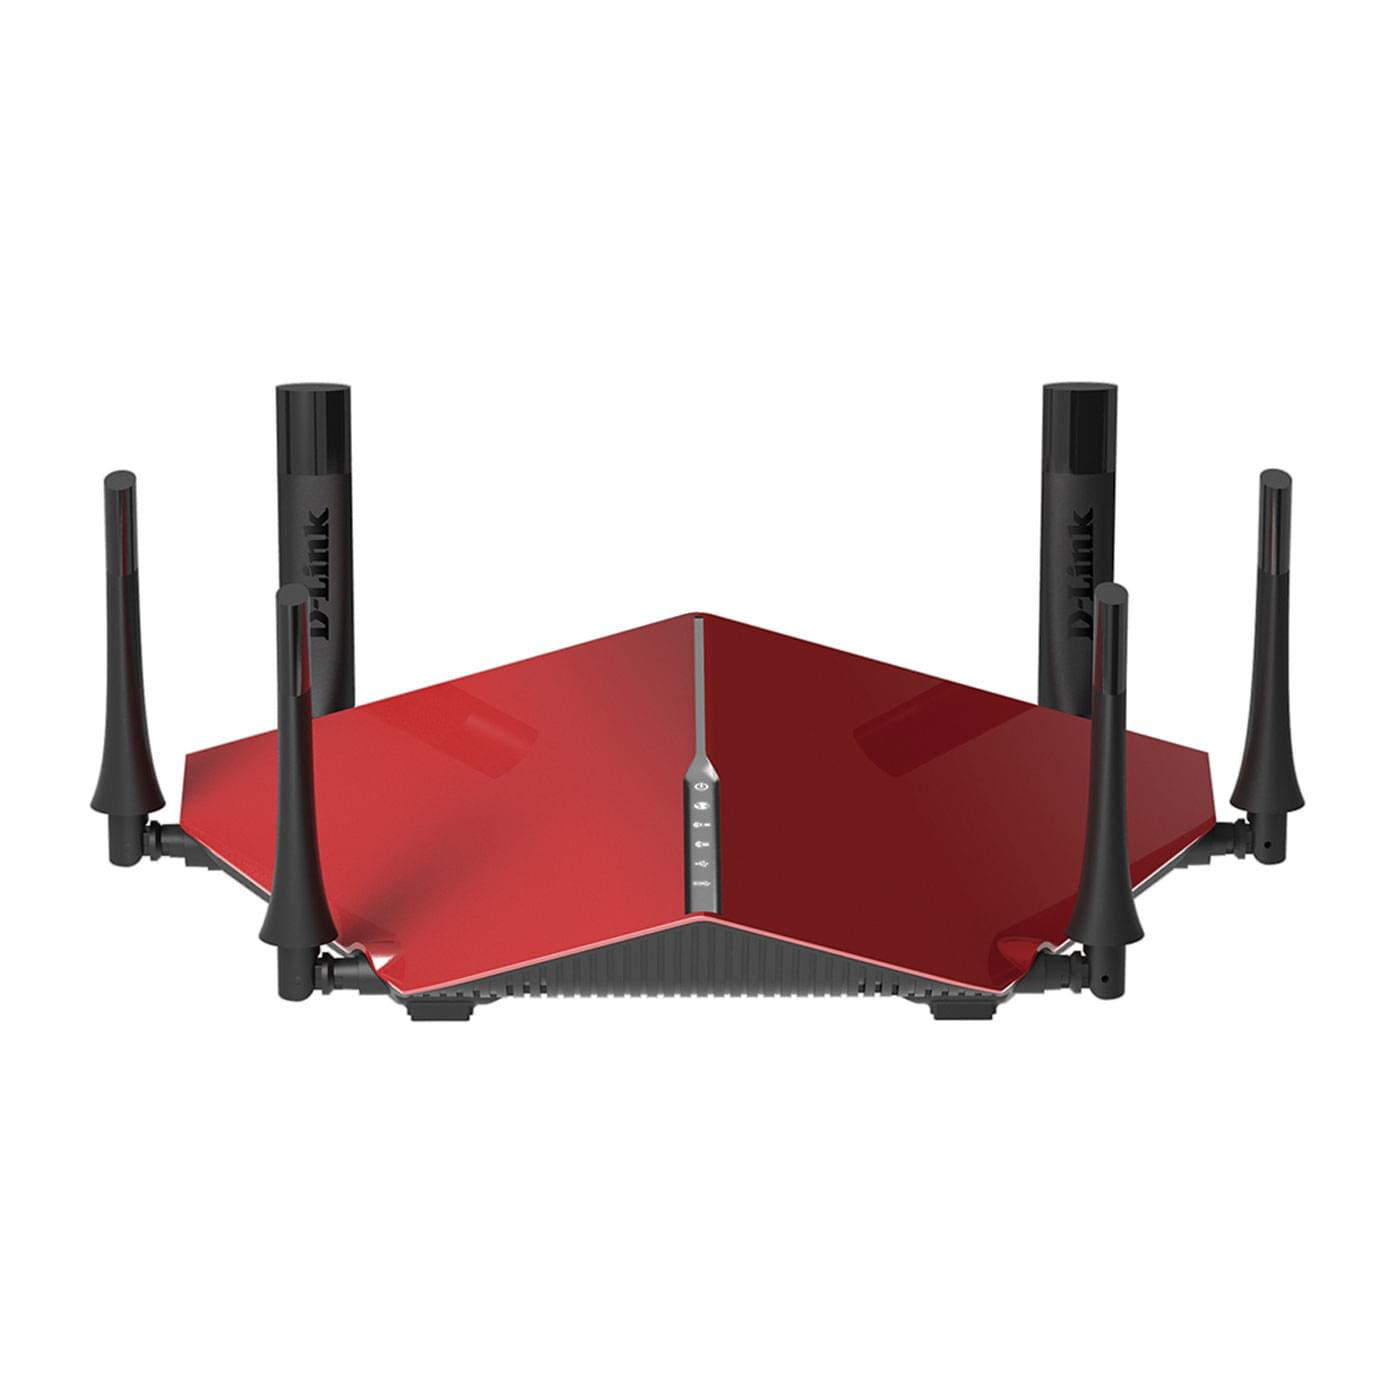 D-Link DIR-890L Wireless AC3200 ULTRA Wi-Fi Router - Routeur - 0